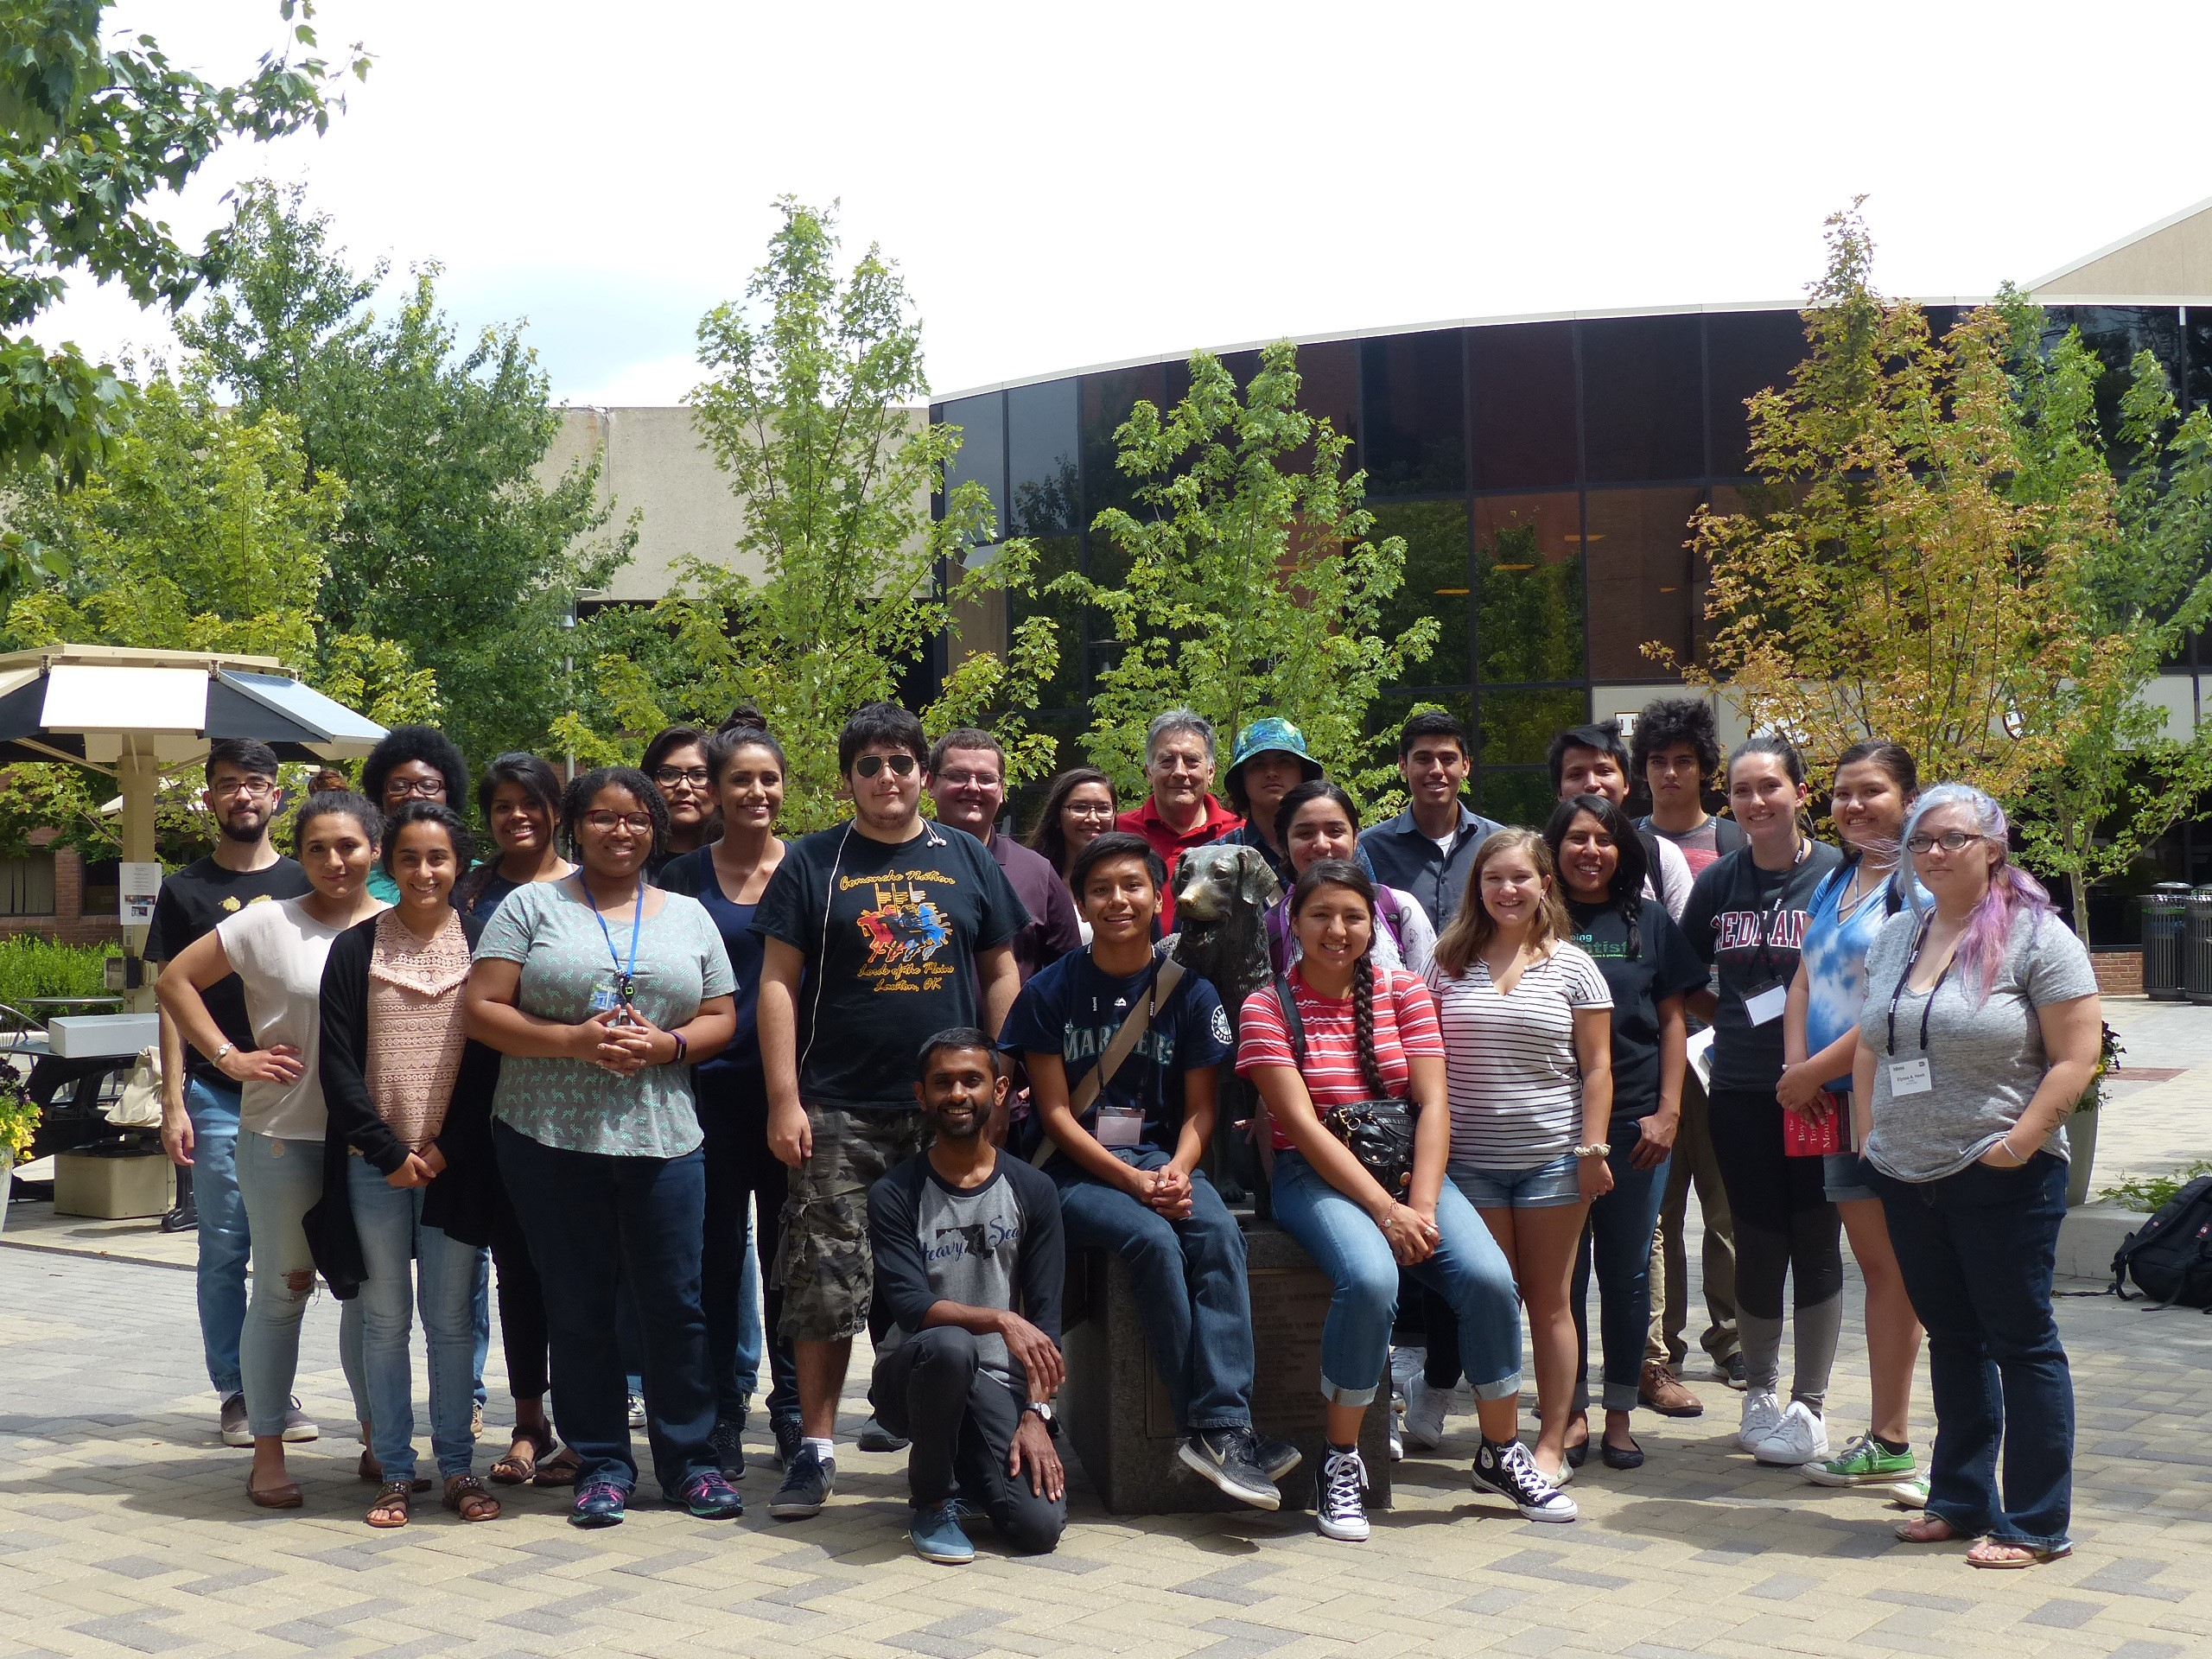 In July, twenty-one high school and college students from across the country completed a three-day phage-hunting workshop hosted by HHMI's Science Education Alliance.